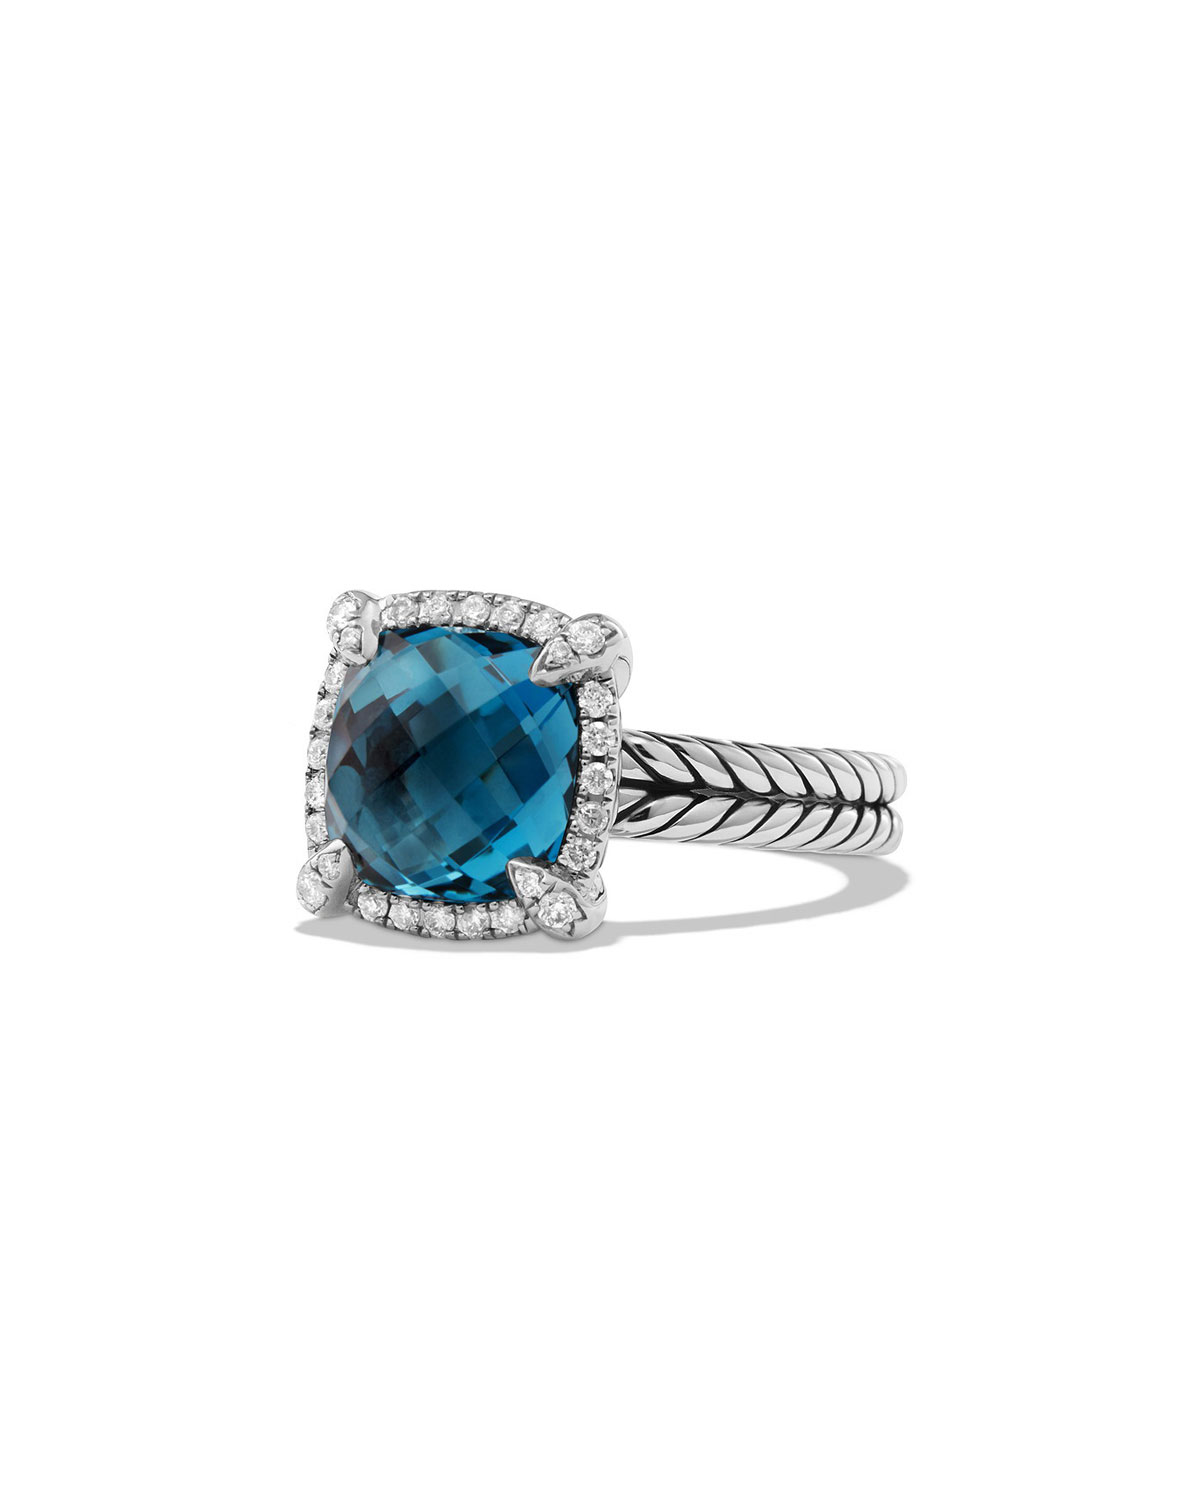 33ae16a73a10 David Yurman 9mm Châtelaine Ring with Diamonds in Blue Topaz ...